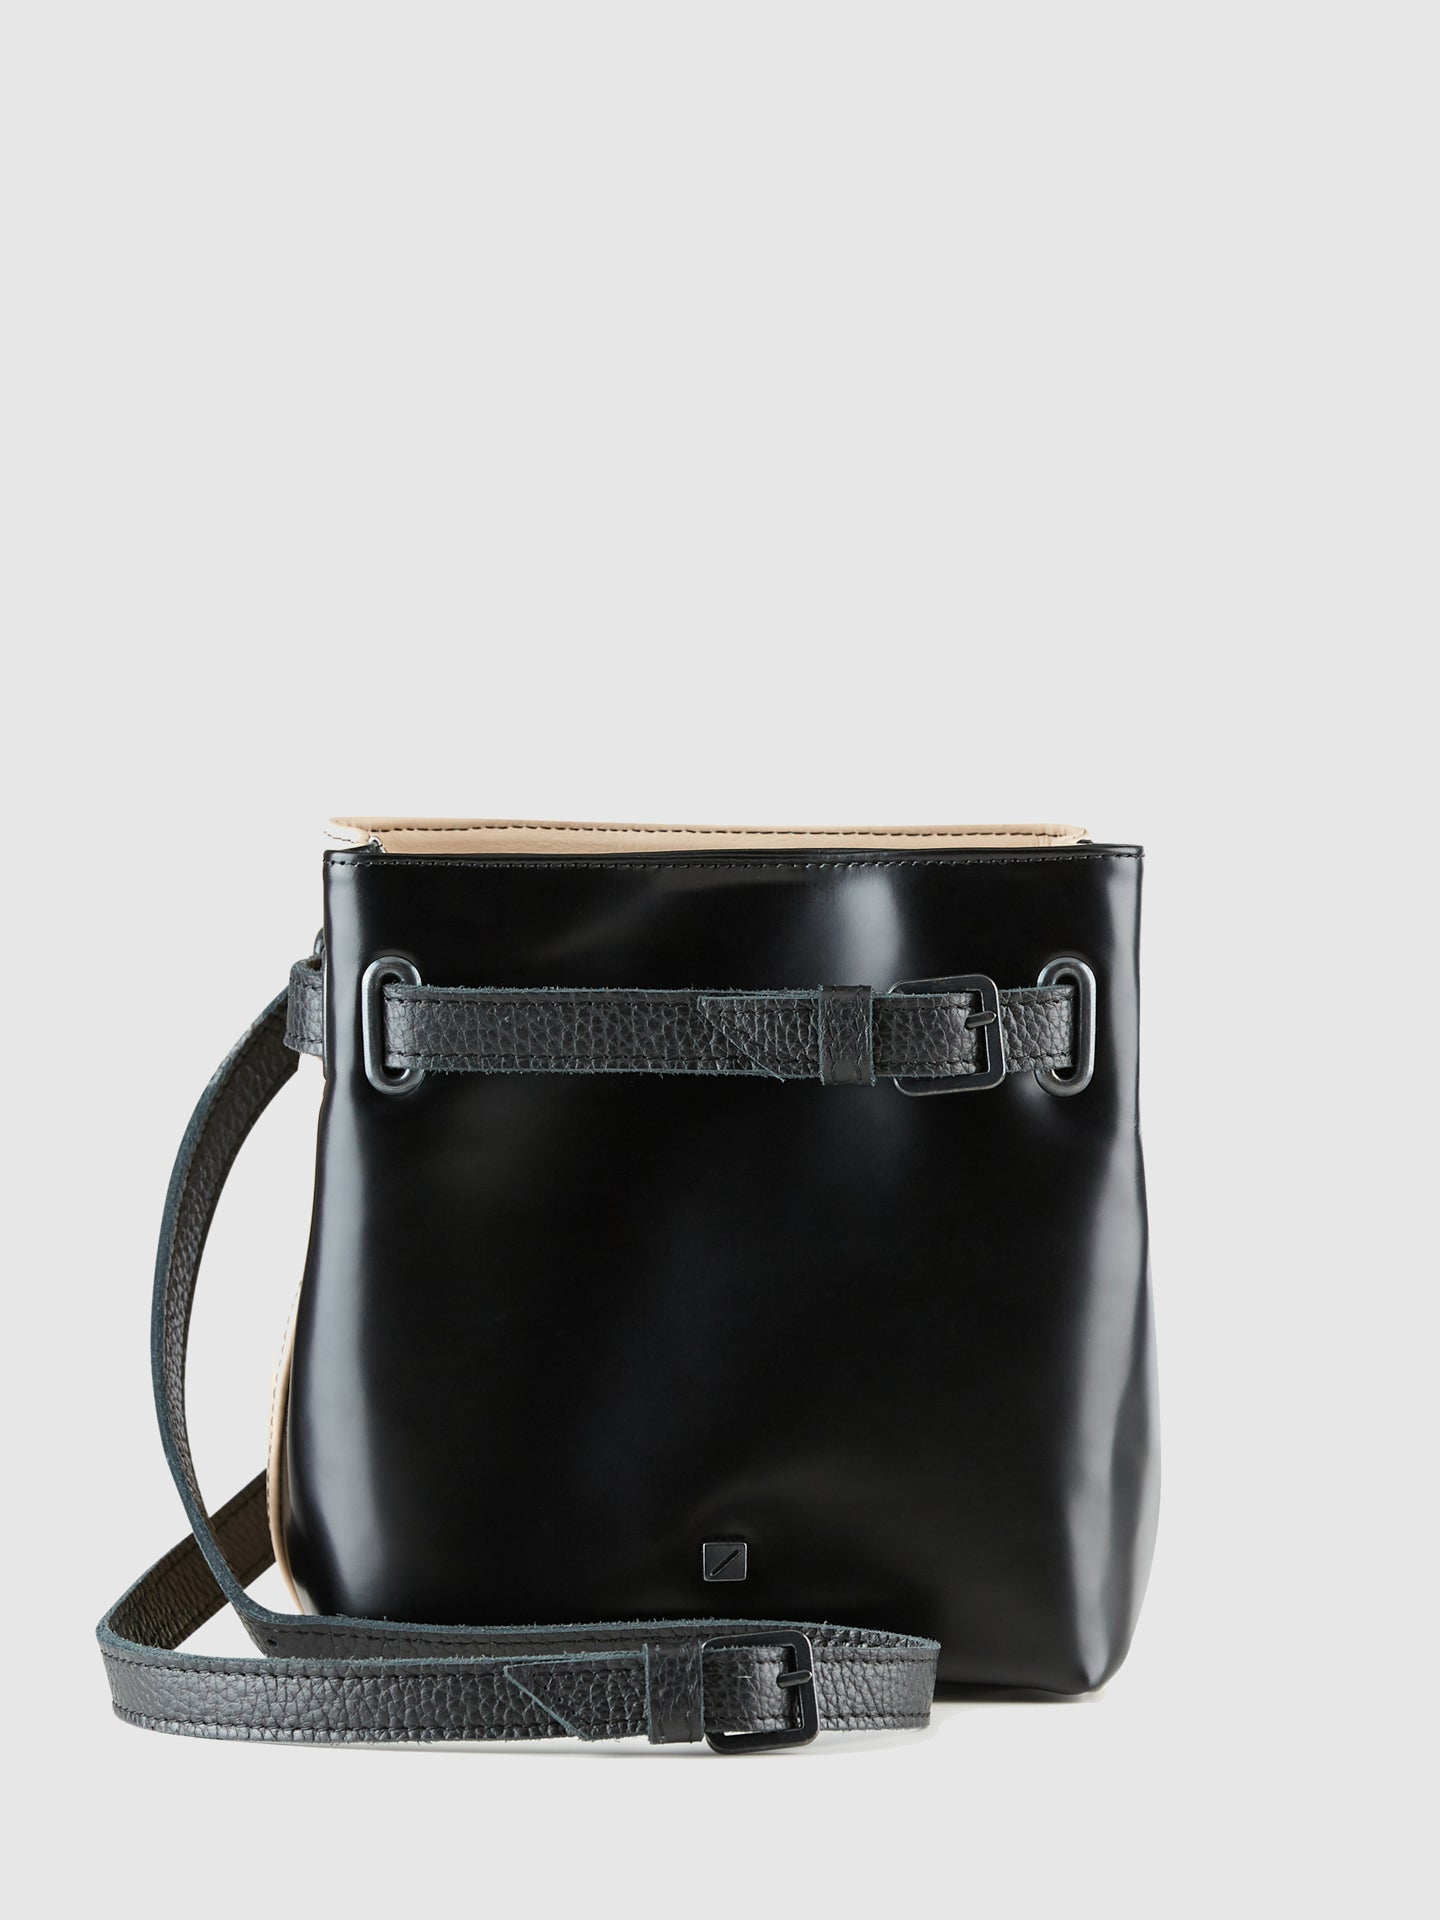 Maria Maleta Black and Pale Pink Reversible Crossbody Bag